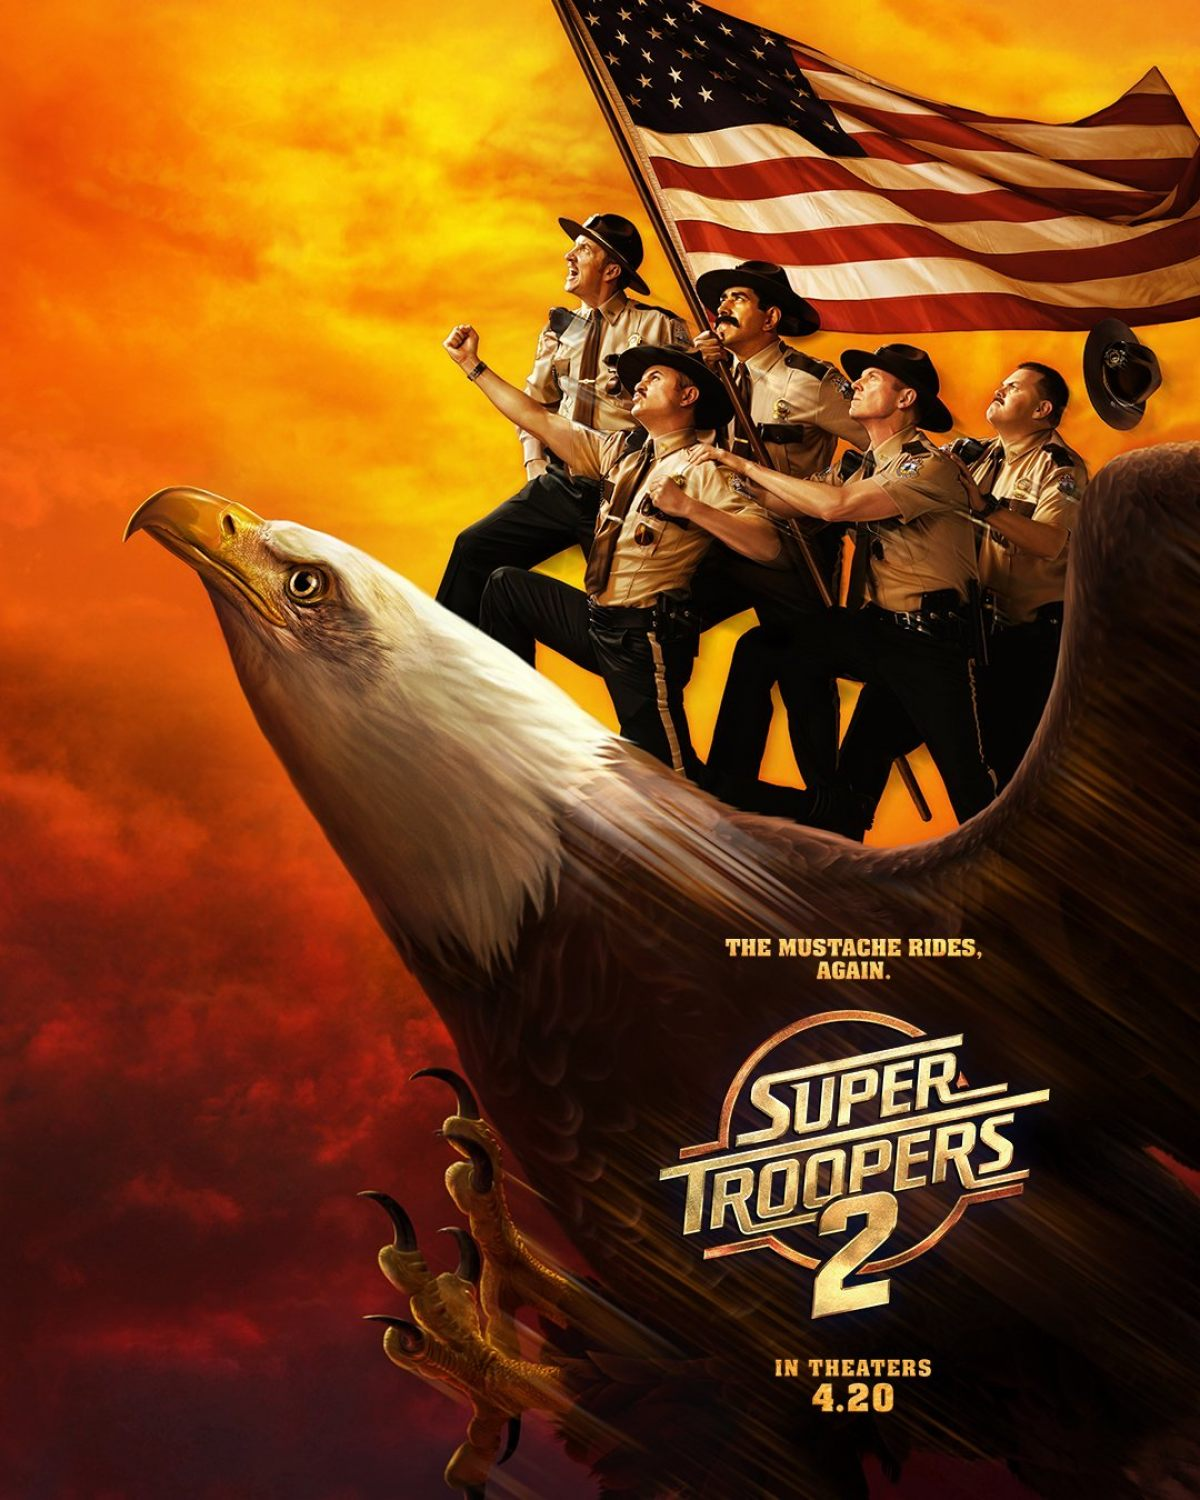 The SUPER TROOPERS 2 Poster Will Restore Your Faith In